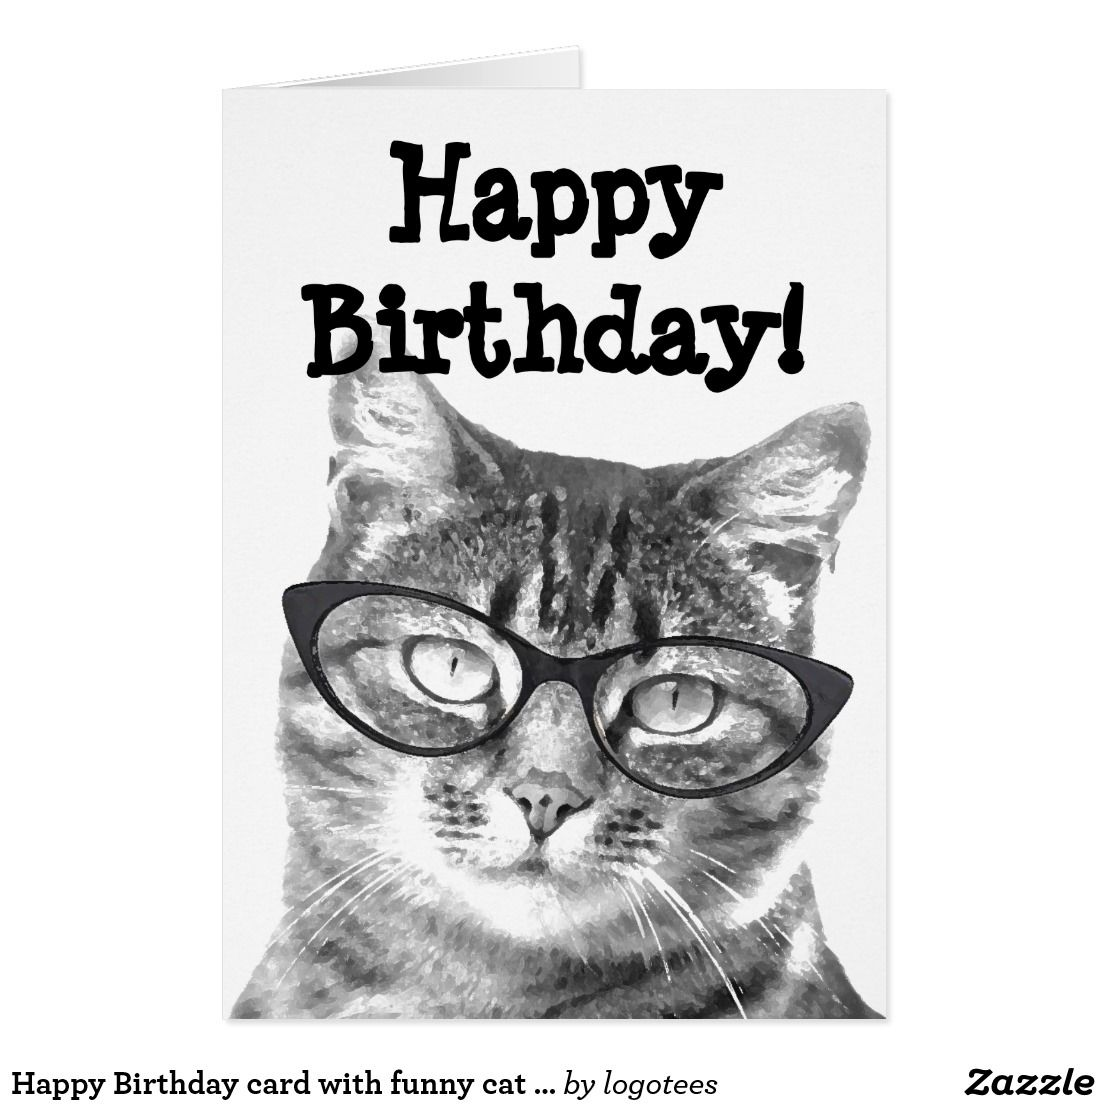 Happy Birthday Card With Funny Cat Design Pinterest Happy